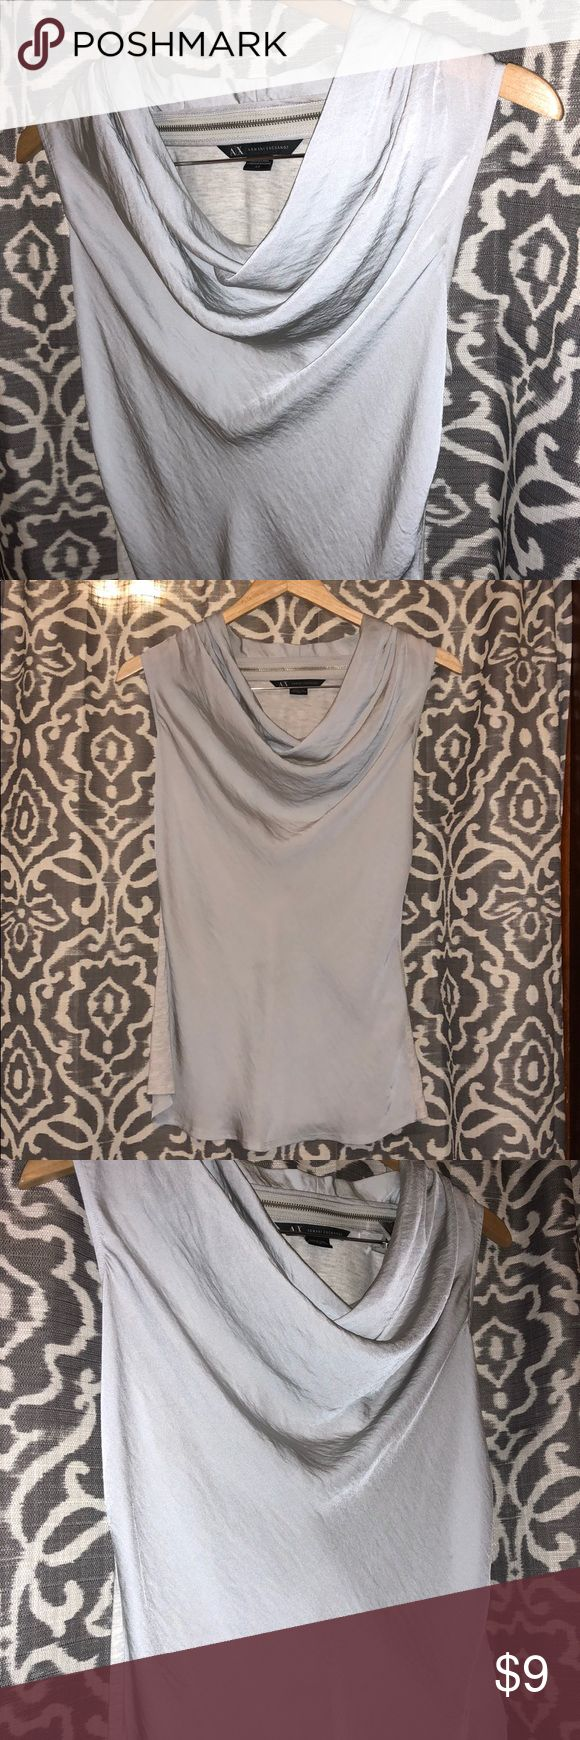 Armani Exchange Cowl Neck Top A/X Armani Exchange shimmering look cowl neck top. Light gray/silver front with marled look light gray/white at back. Back of neckline has decorative zipper hardware. Worn once. Like new condition. Size small. A/X Armani Exchange Tops